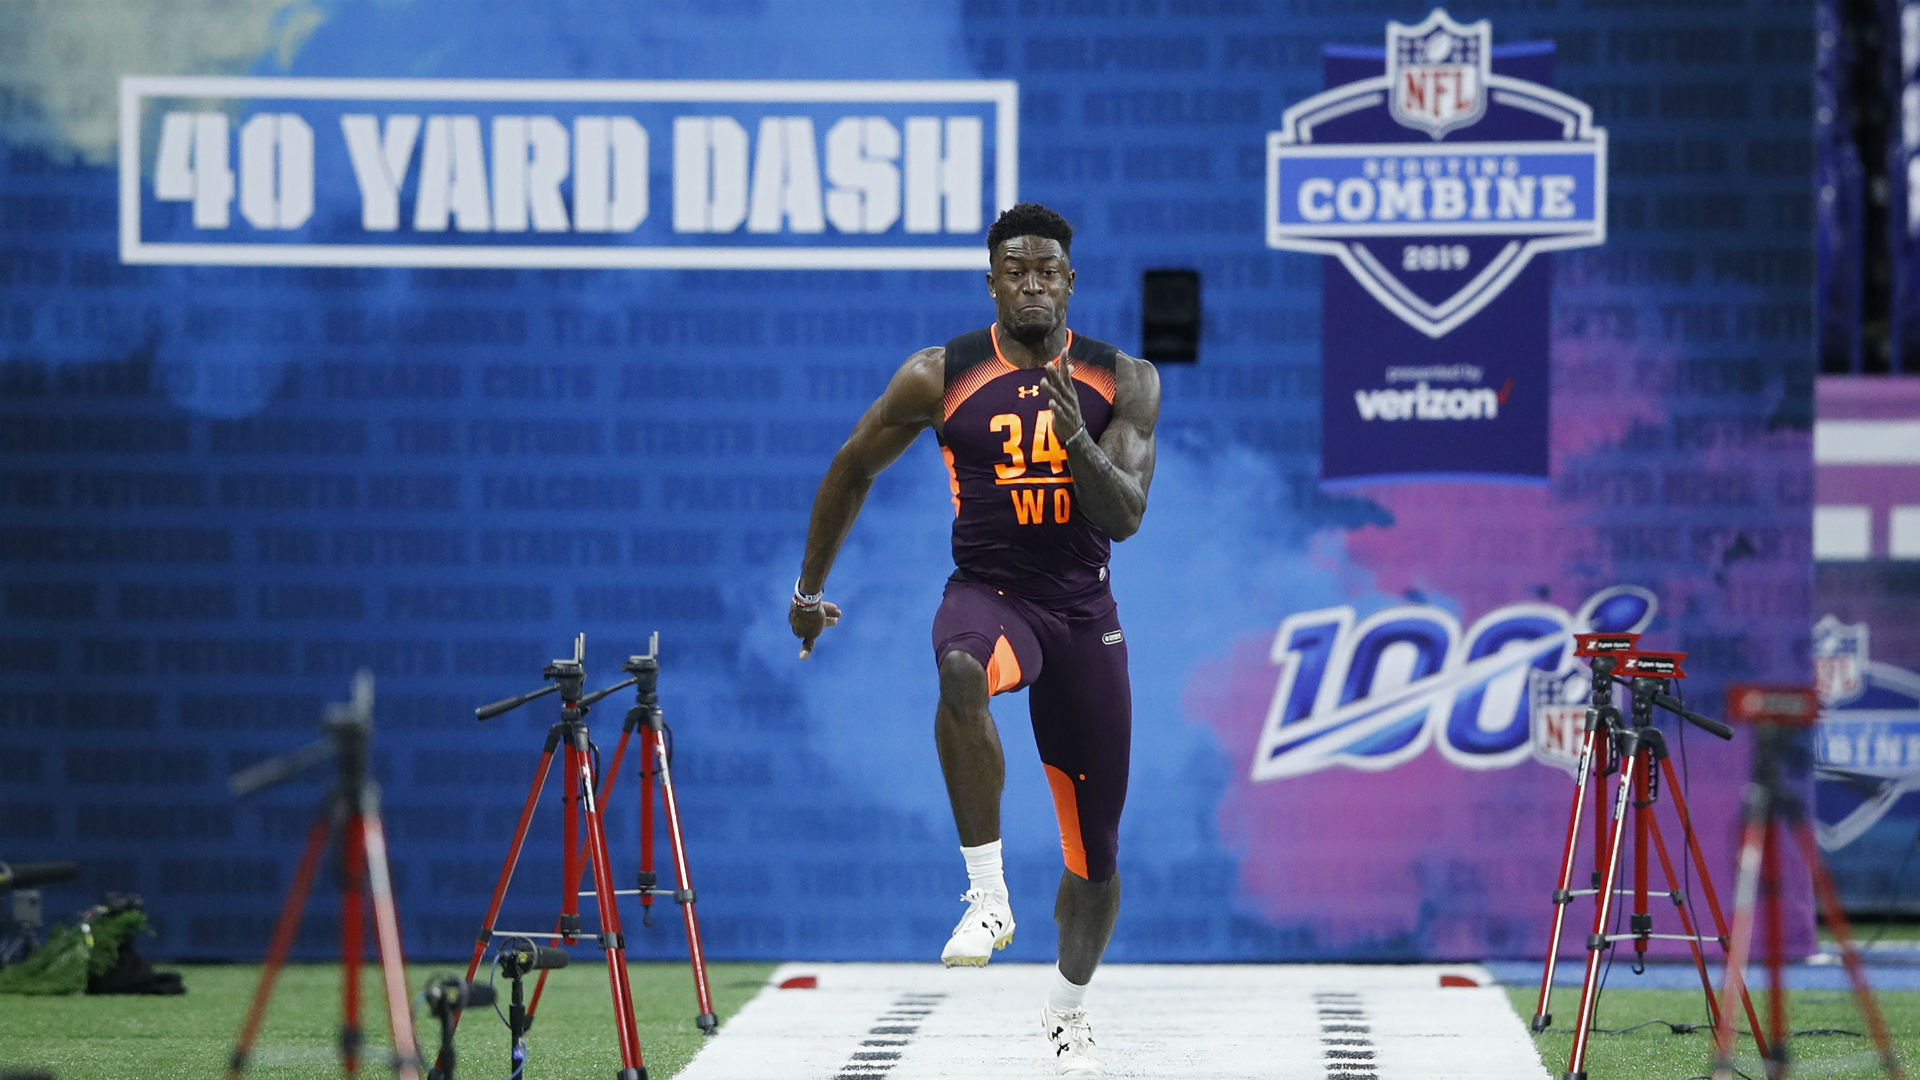 NFL Combine 2020 schedule, dates, workout times, records, invites more to know